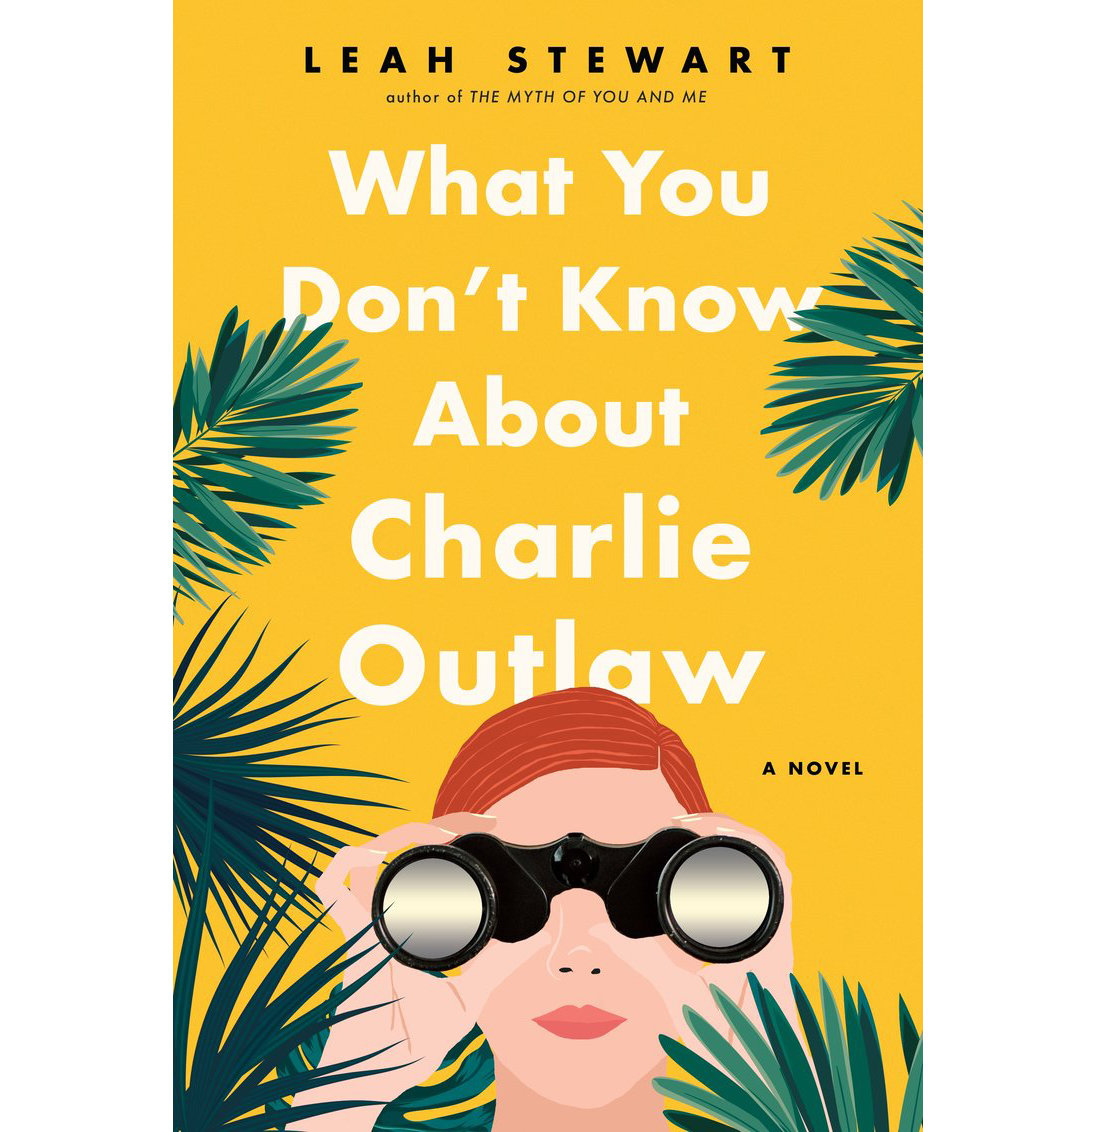 What You Don't Know About Charlie Outlaw, by Leah Stewart